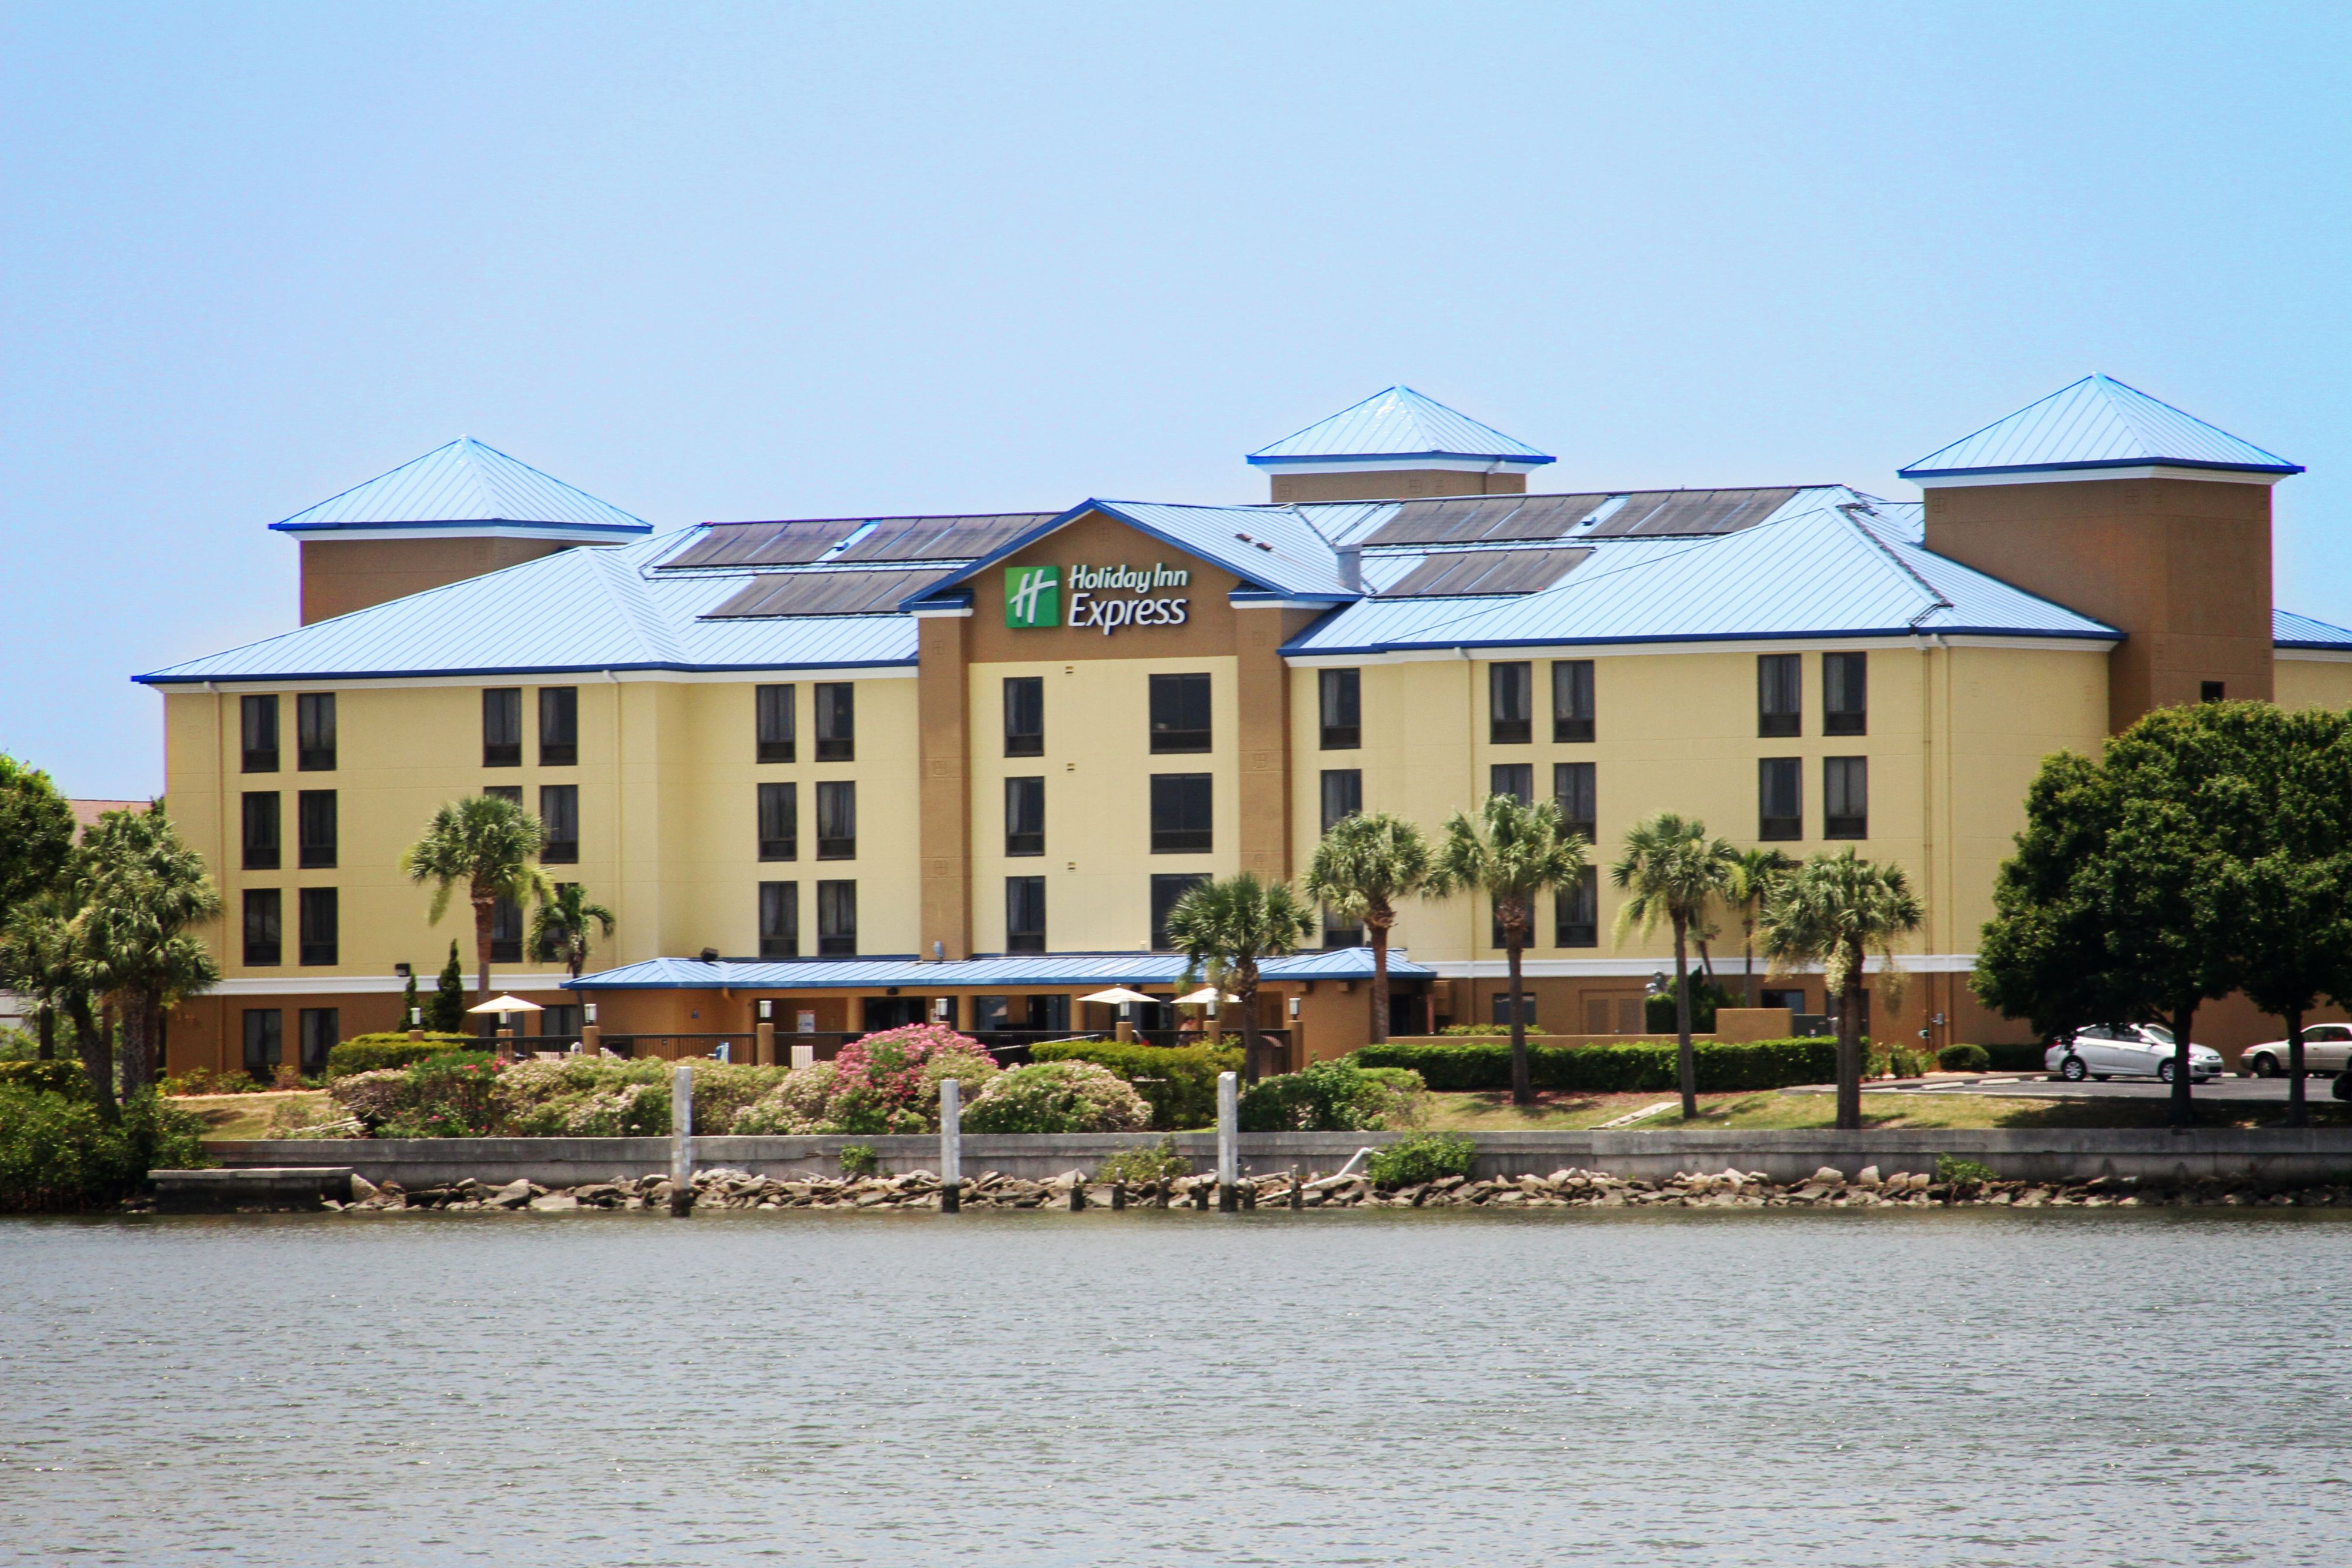 Holiday inn express suites tampa usf busch gardens at 2807 e busch blvd tampa fl on fave for Days inn tampa north of busch gardens